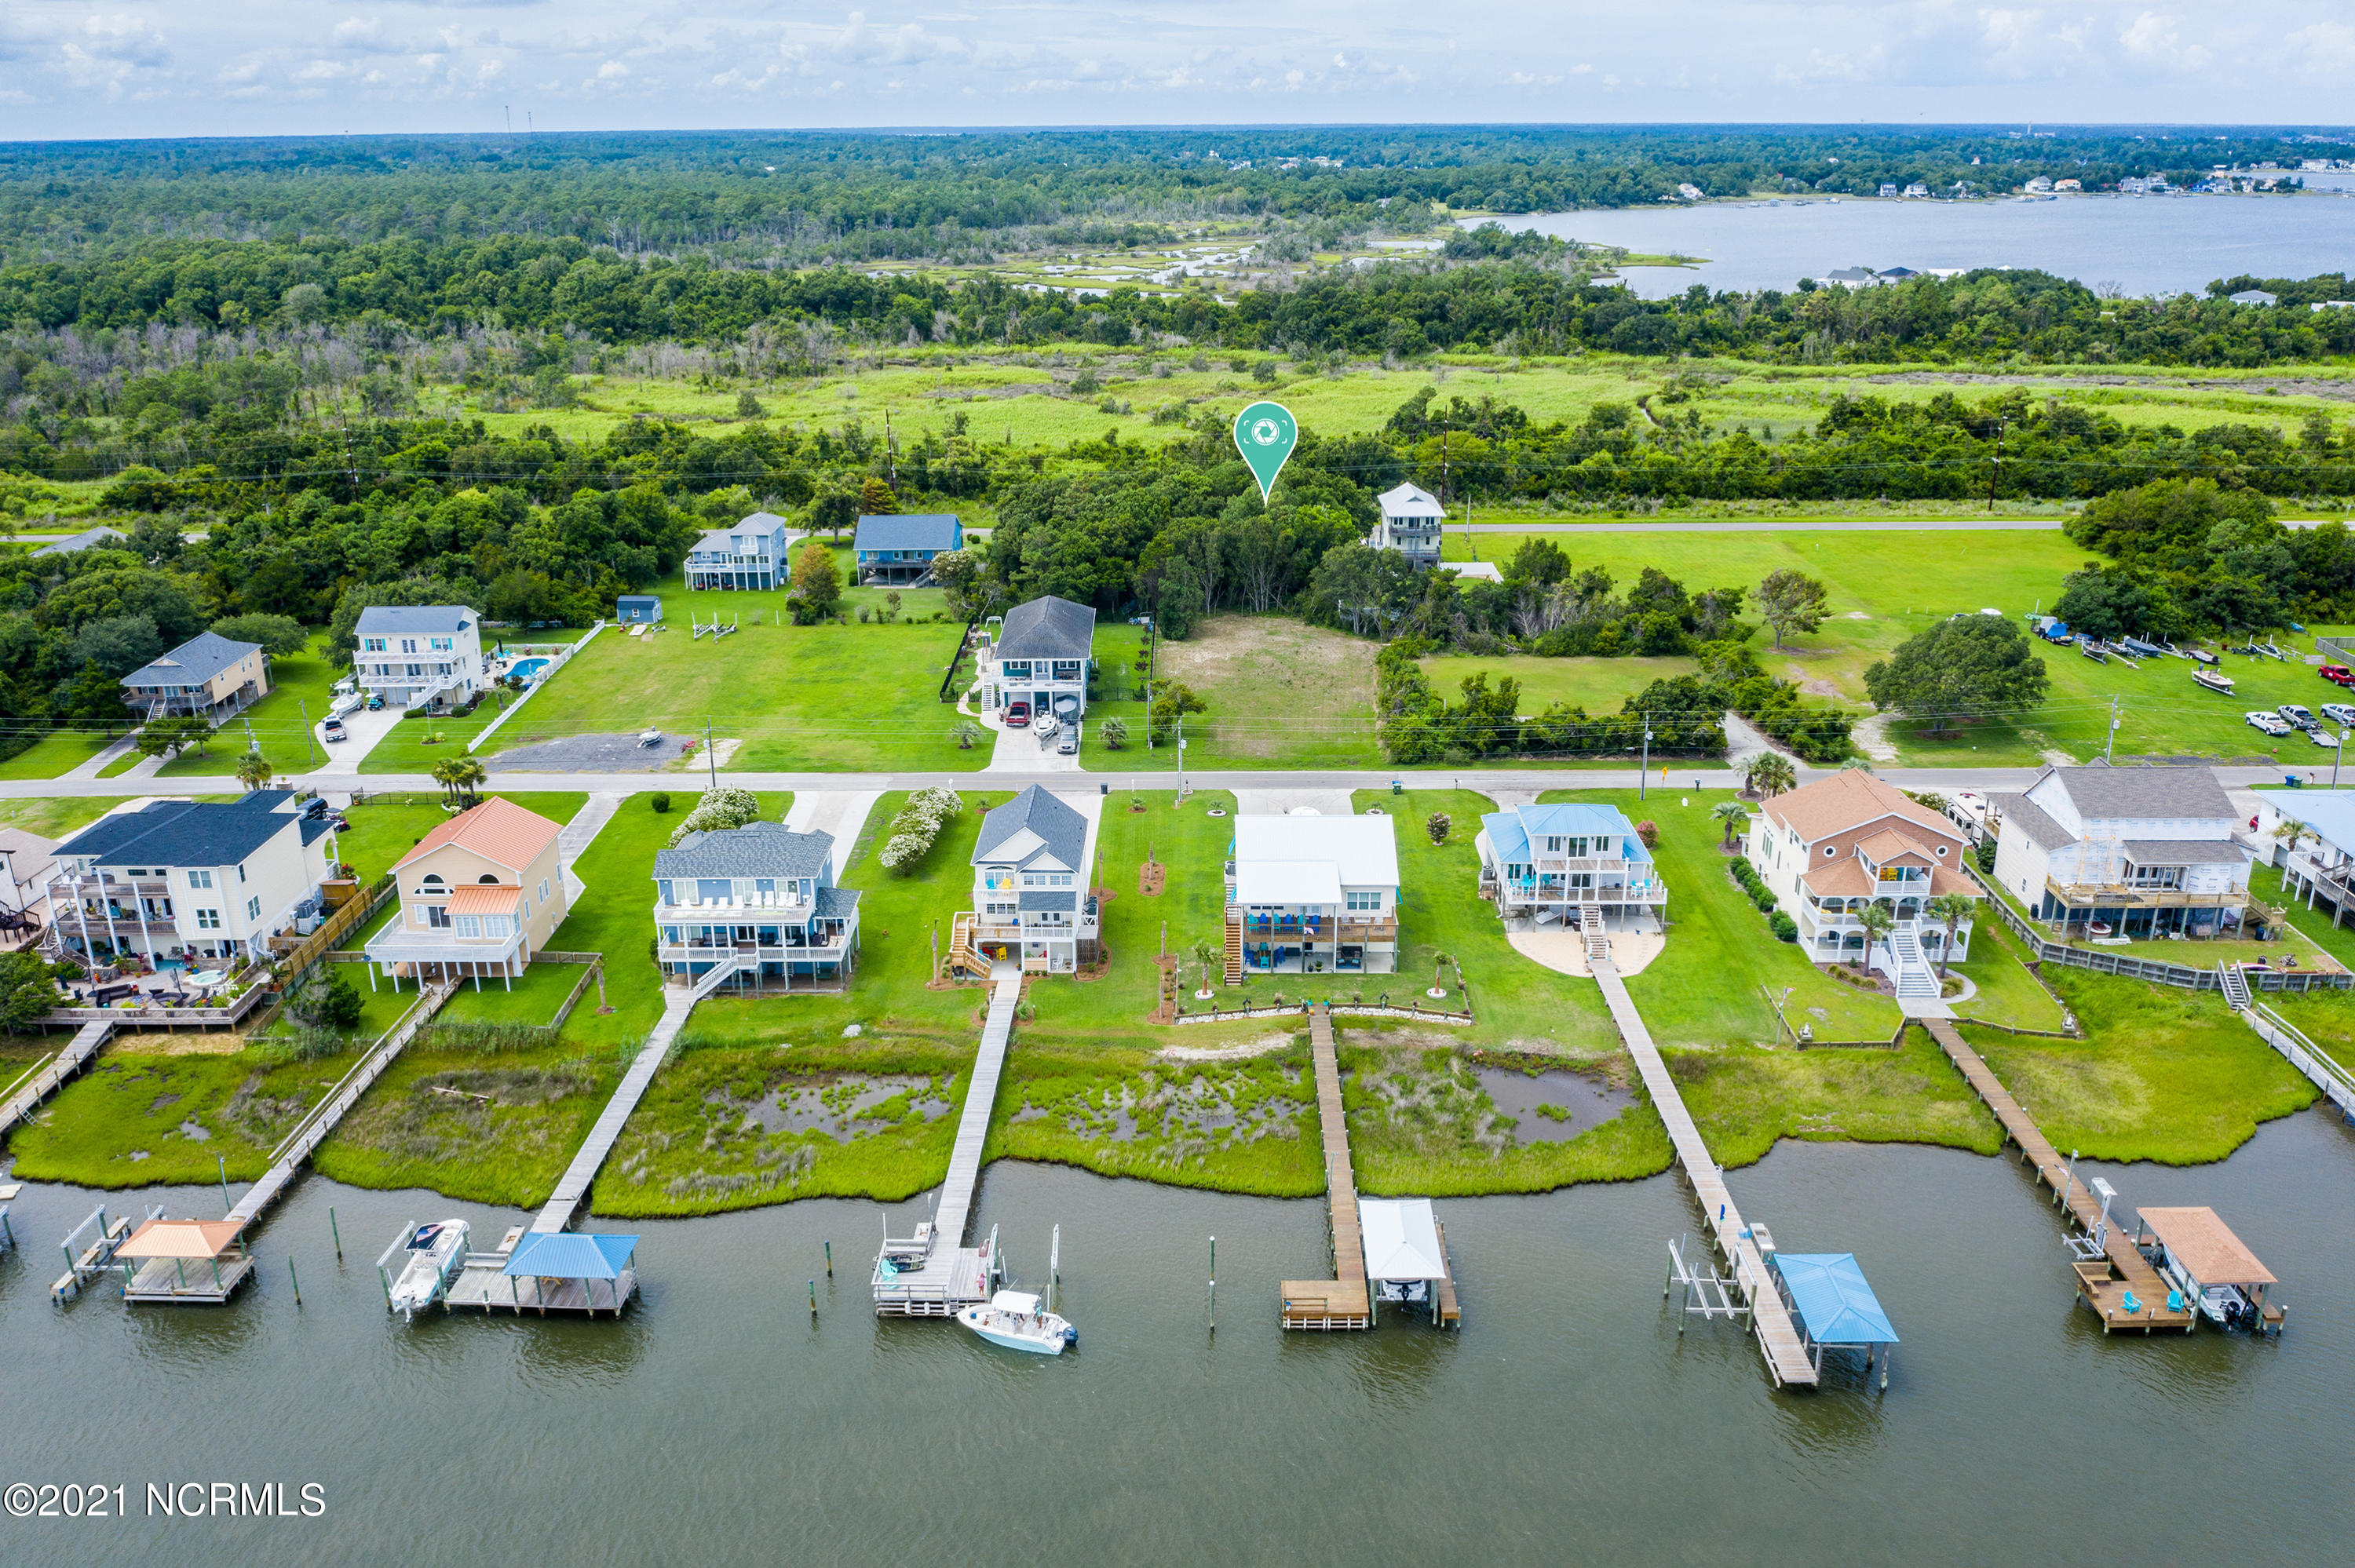 If coastal North Carolina calls, this is your opportunity to own a lot where you can build that brand new home. You'll enjoy no HOA fees and no city taxes with this nice, flat lot. Build your coastal home with views of the Intracoastal Waterway.   Find what's waiti9ng at the beautiful, peaceful North Carolina coast.